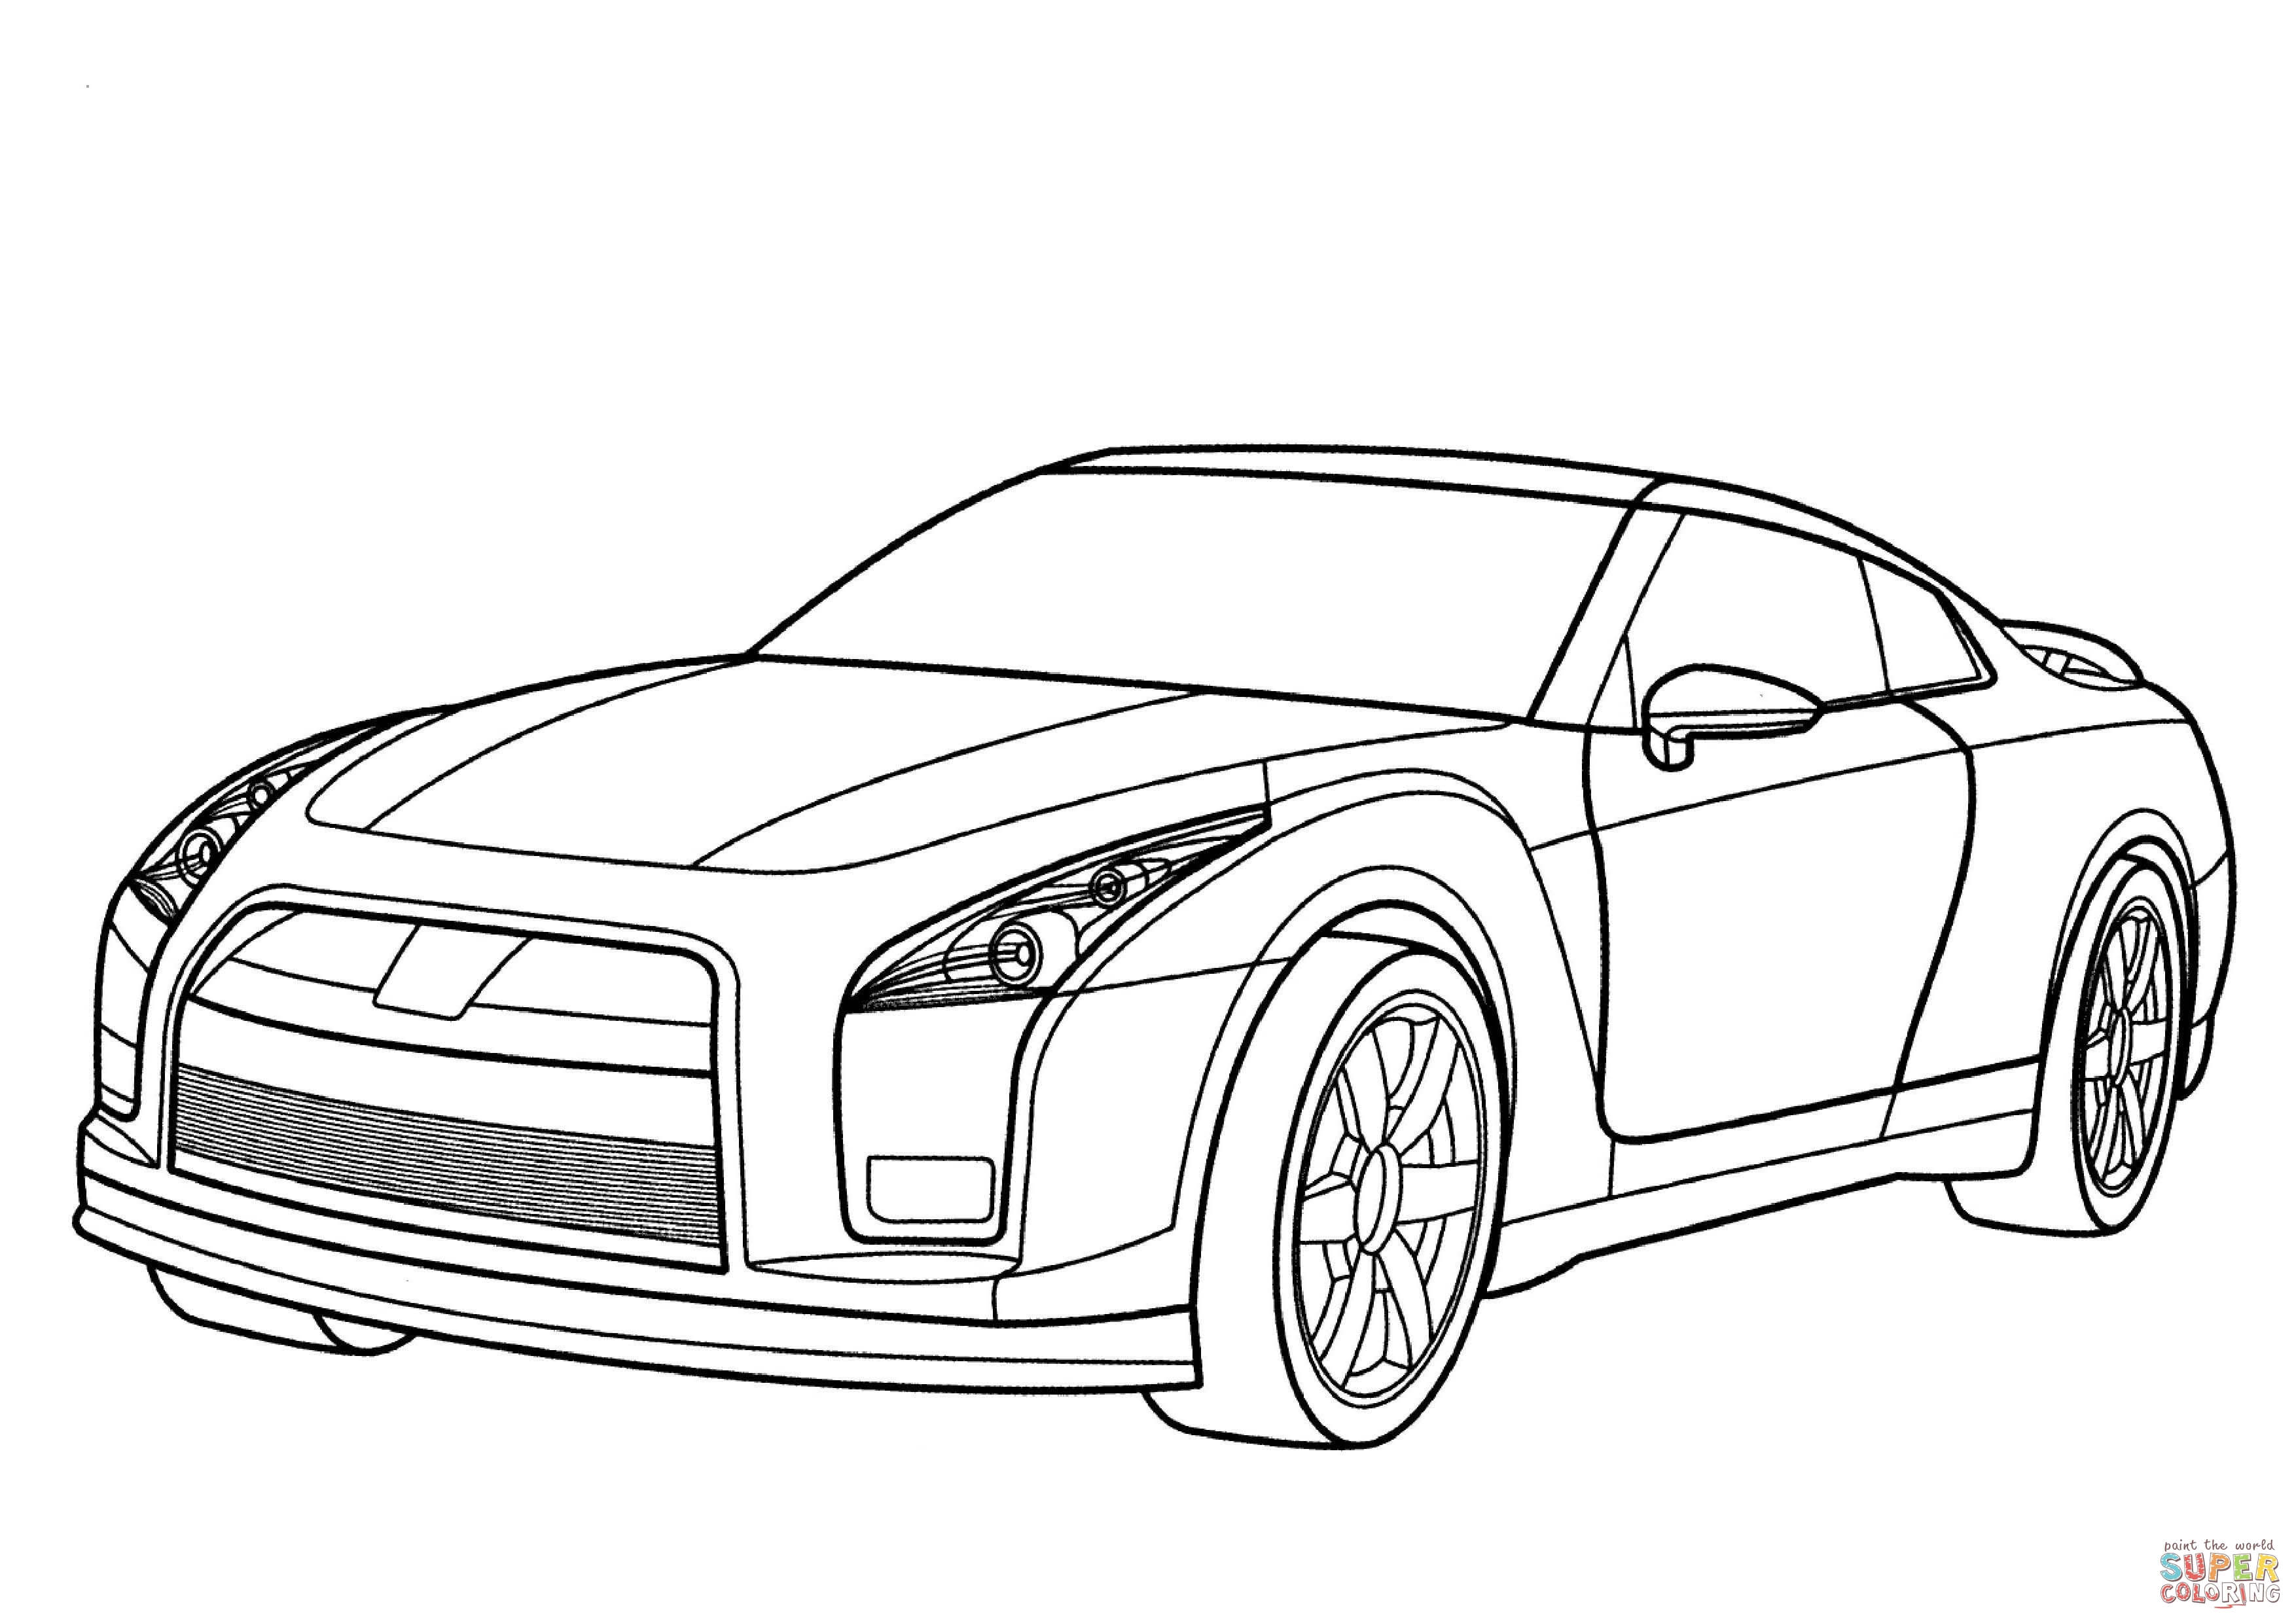 coloring pages nissan gtr nissan skyline gtr r34 coloring pages free coloring pages coloring gtr nissan pages